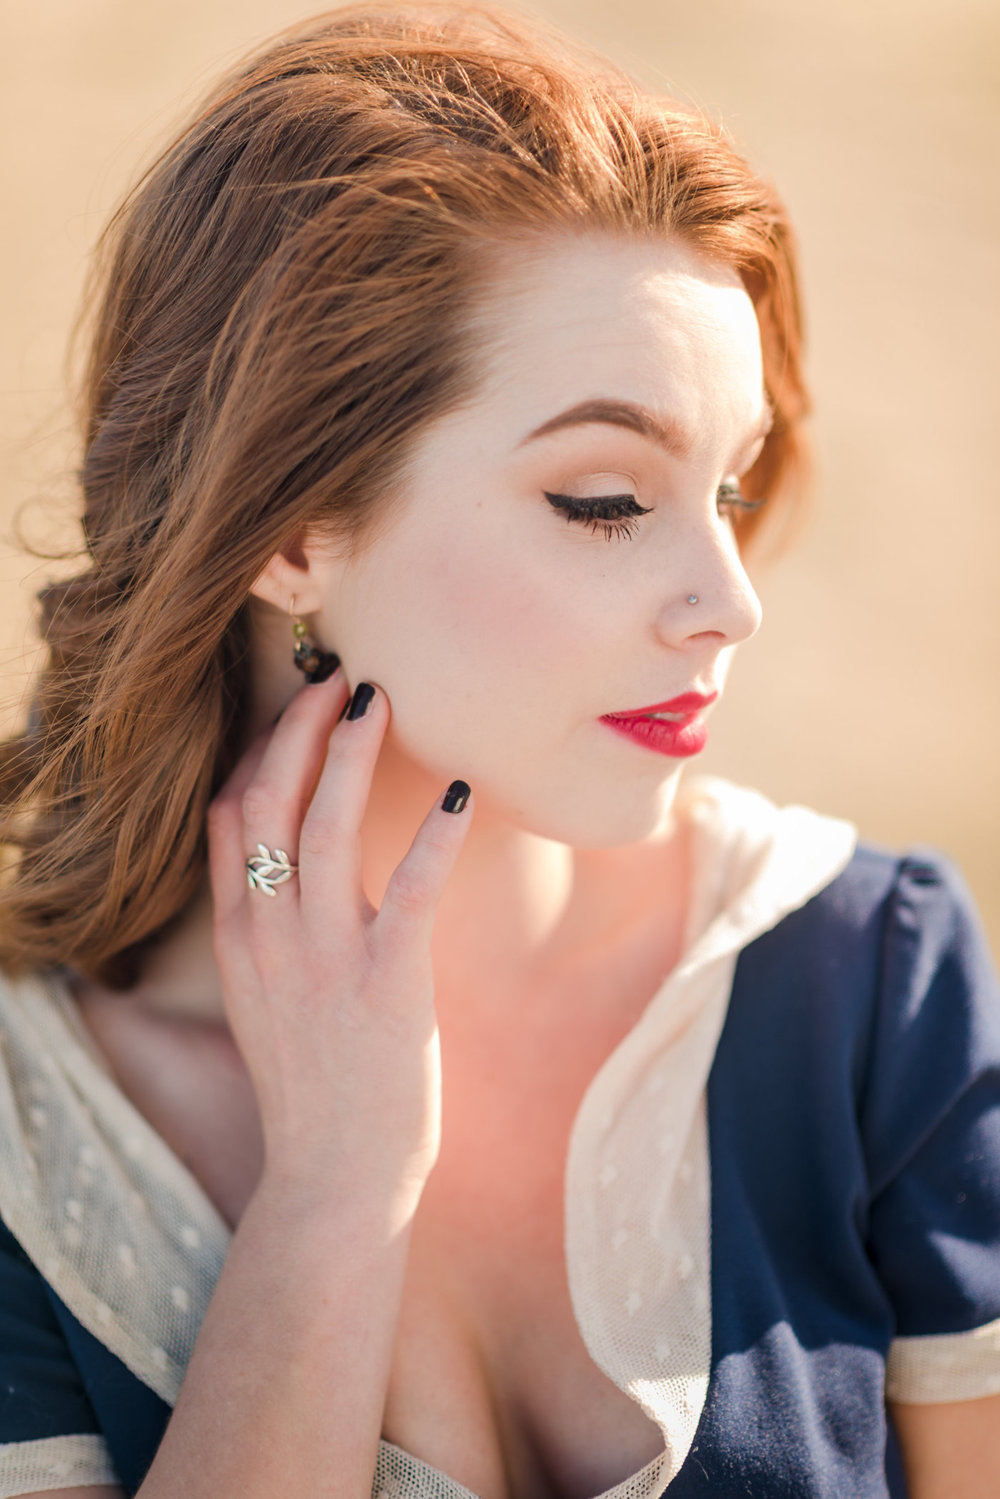 amberly-vintage-beach-session-wolfcrest-photography-74.jpg